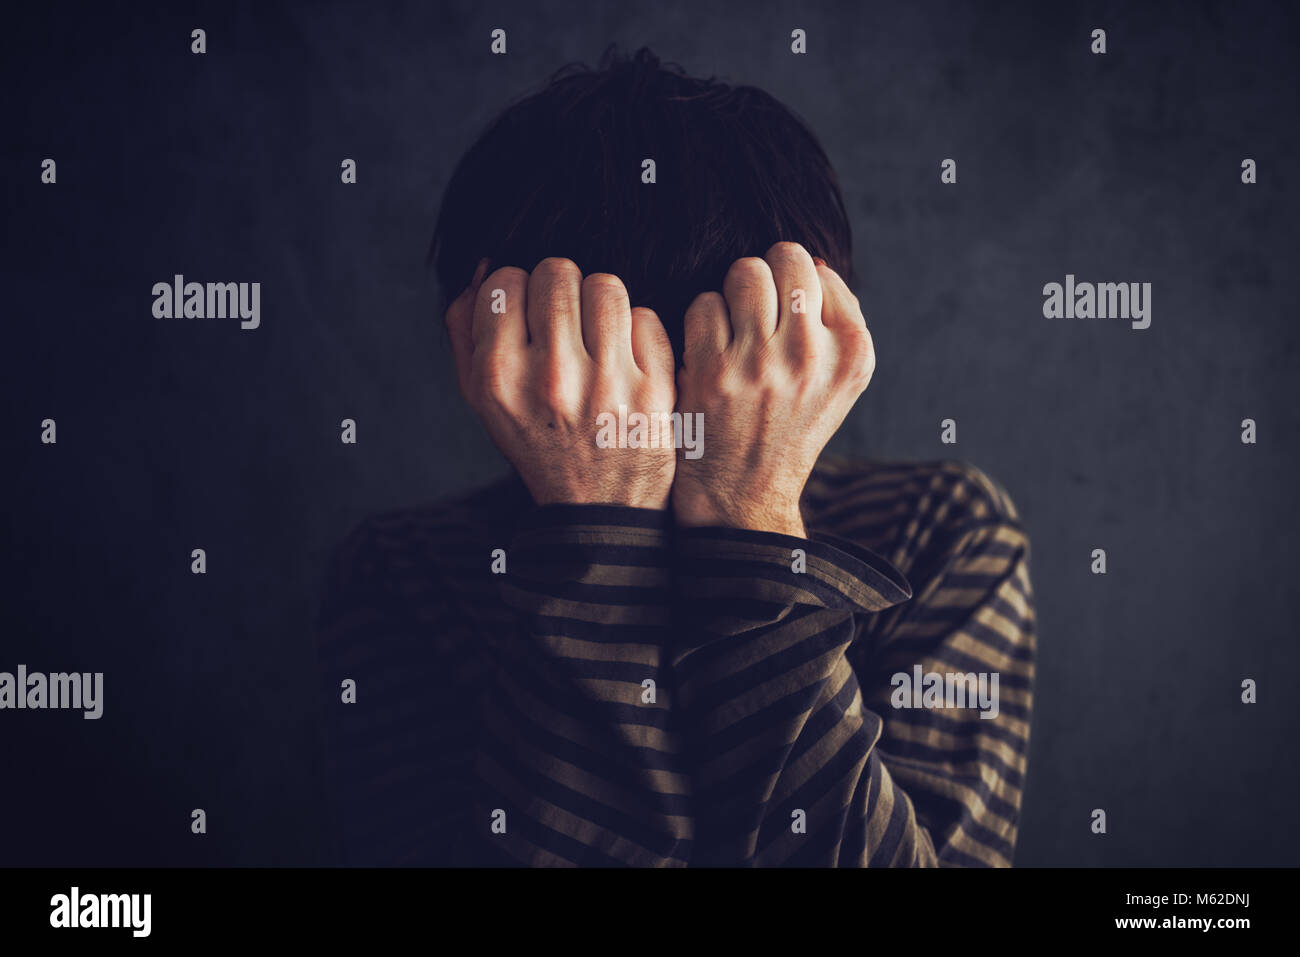 Distraught state of mind, depressive and sad man in dark room - Stock Image